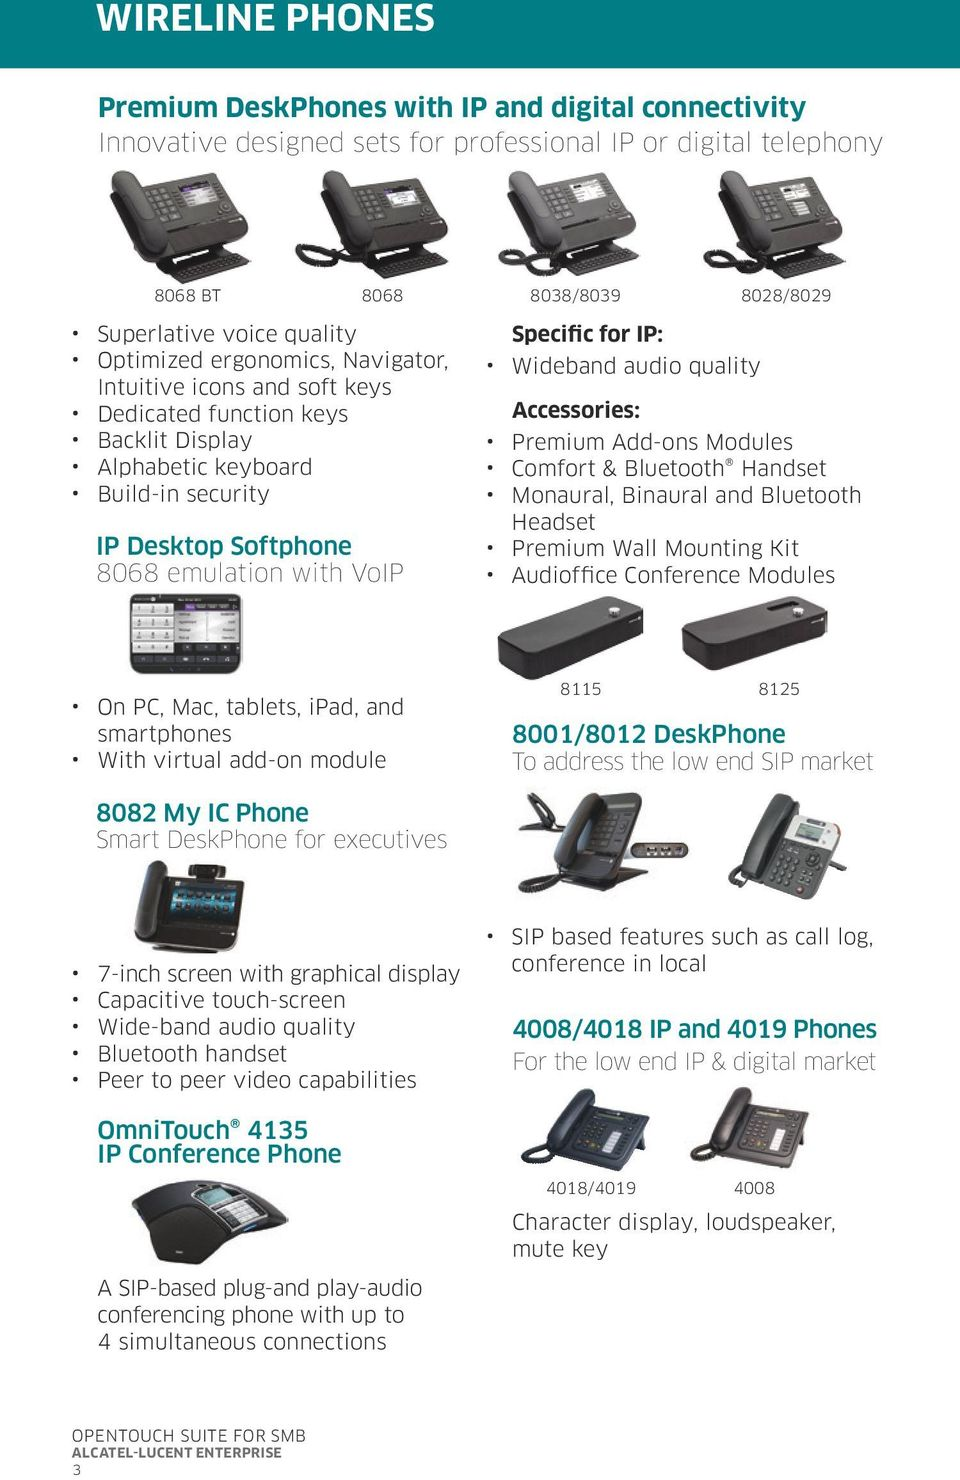 IP: Wideband audio quality Accessories: Premium Add-ons Modules Comfort & Bluetooth Handset Monaural, Binaural and Bluetooth Headset Premium Wall Mounting Kit Audioffice Conference Modules On PC,